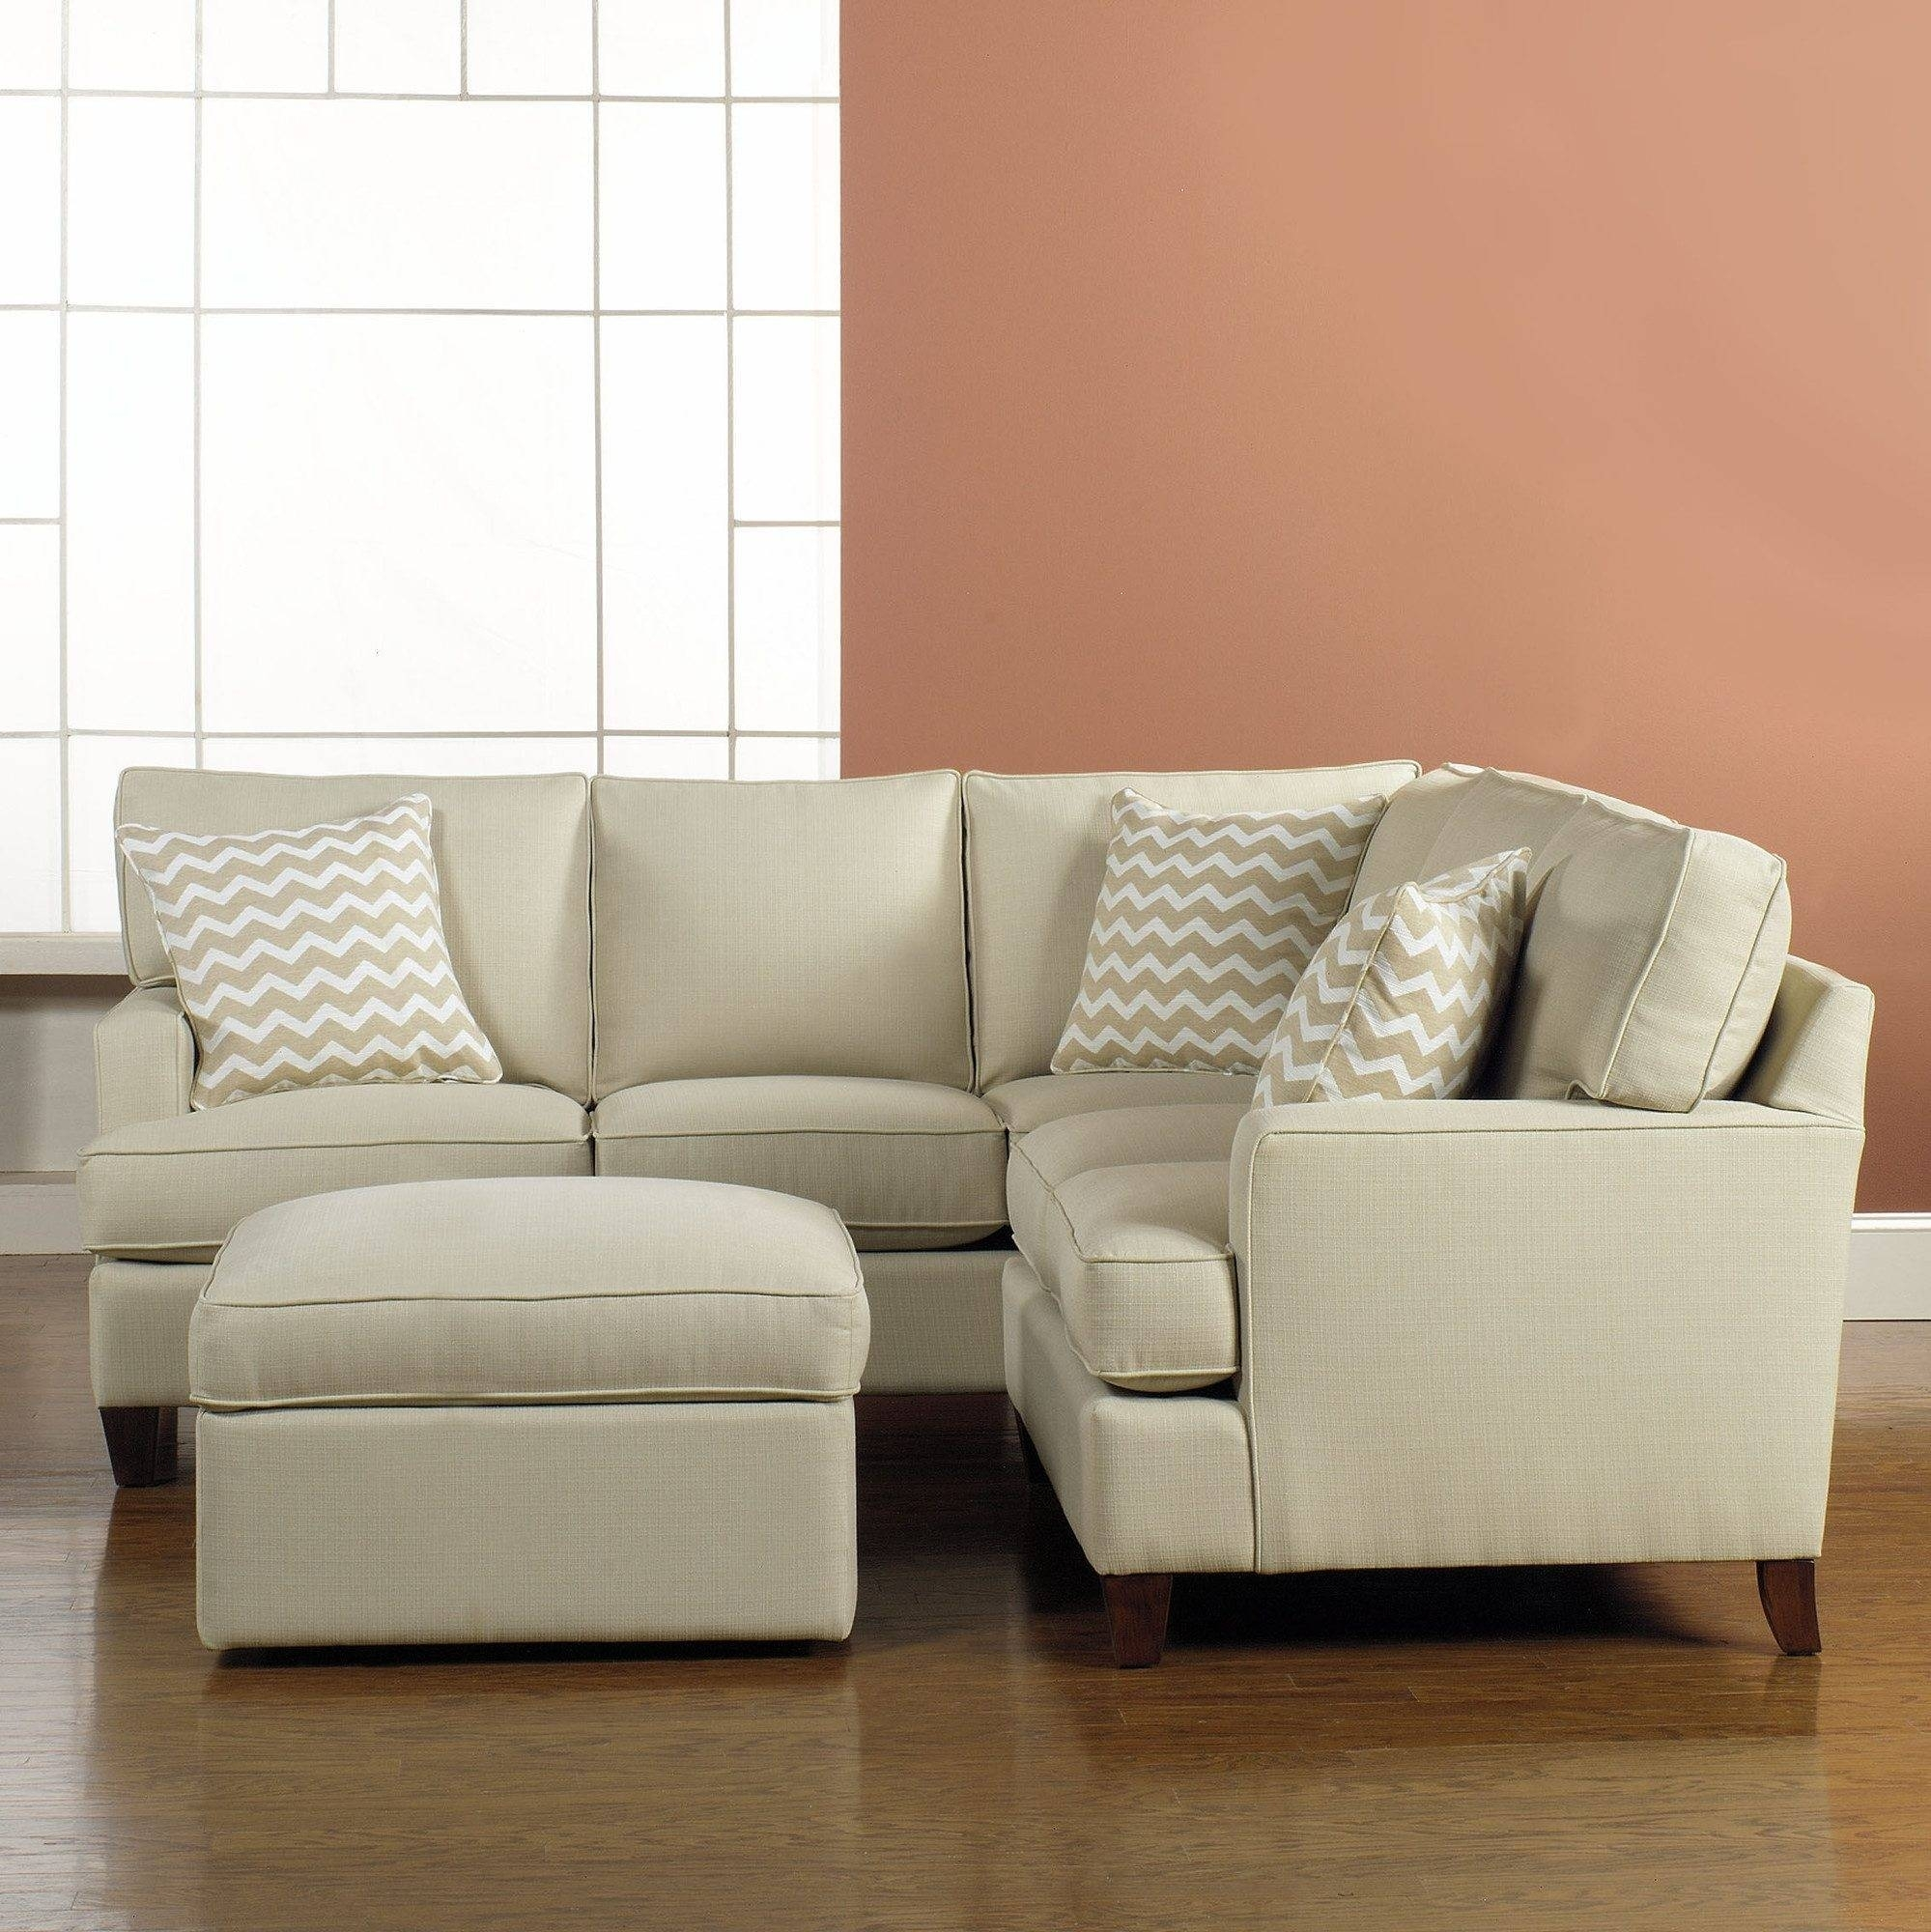 very small sectional sofa ideas on foter rh foter com corner sofa beds for small rooms corner furniture for small spaces